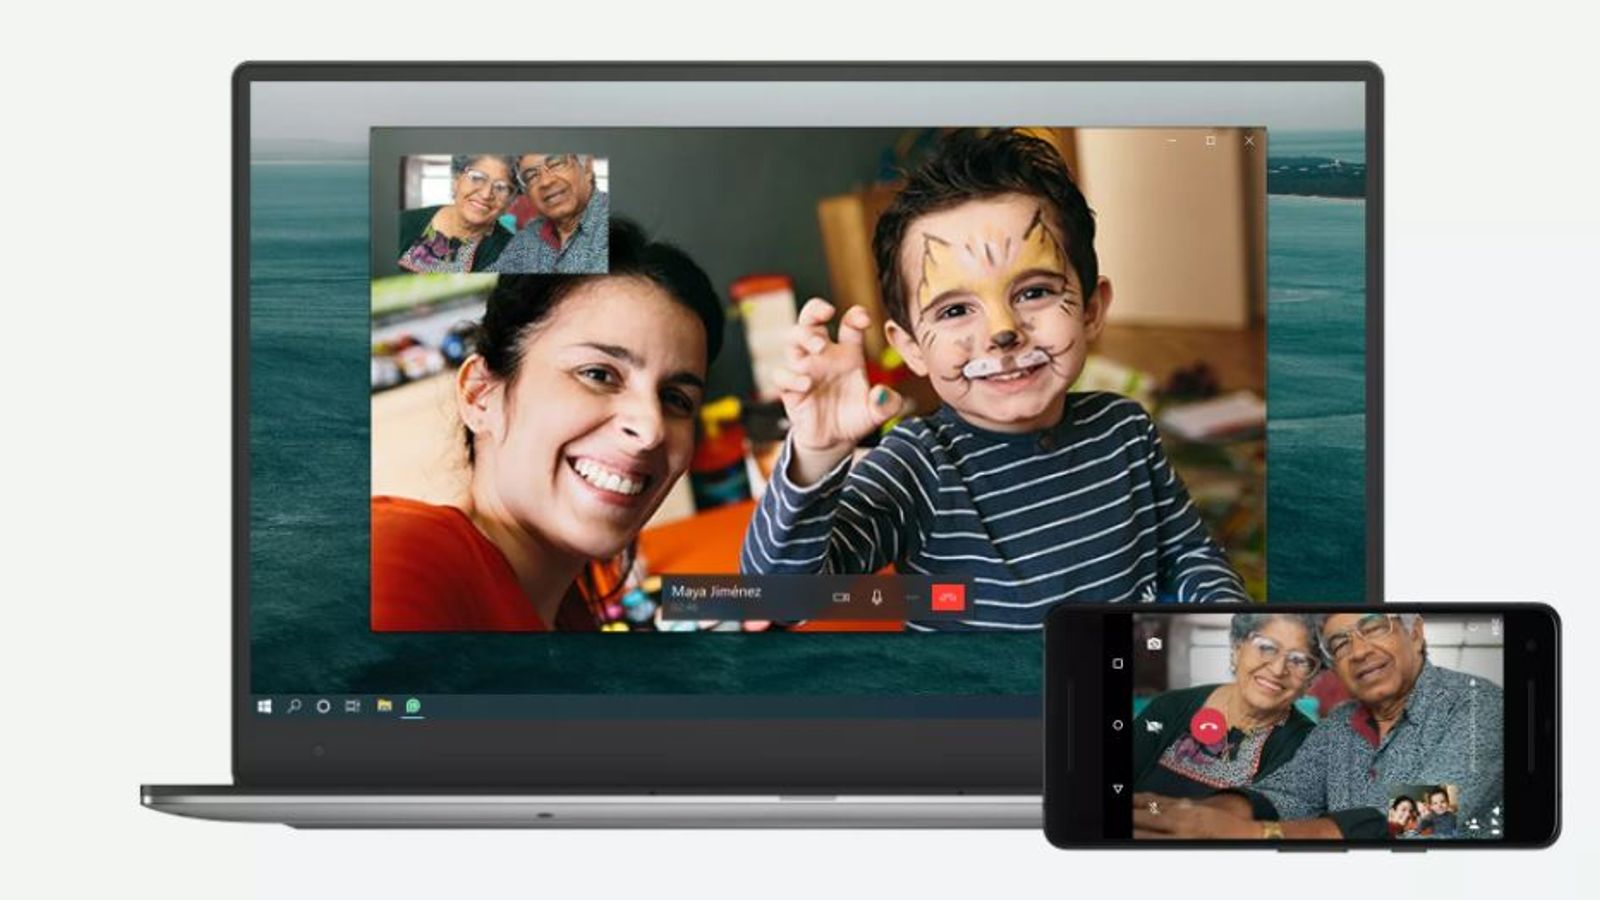 WhatsApp introduces video and voice calls on desktop model